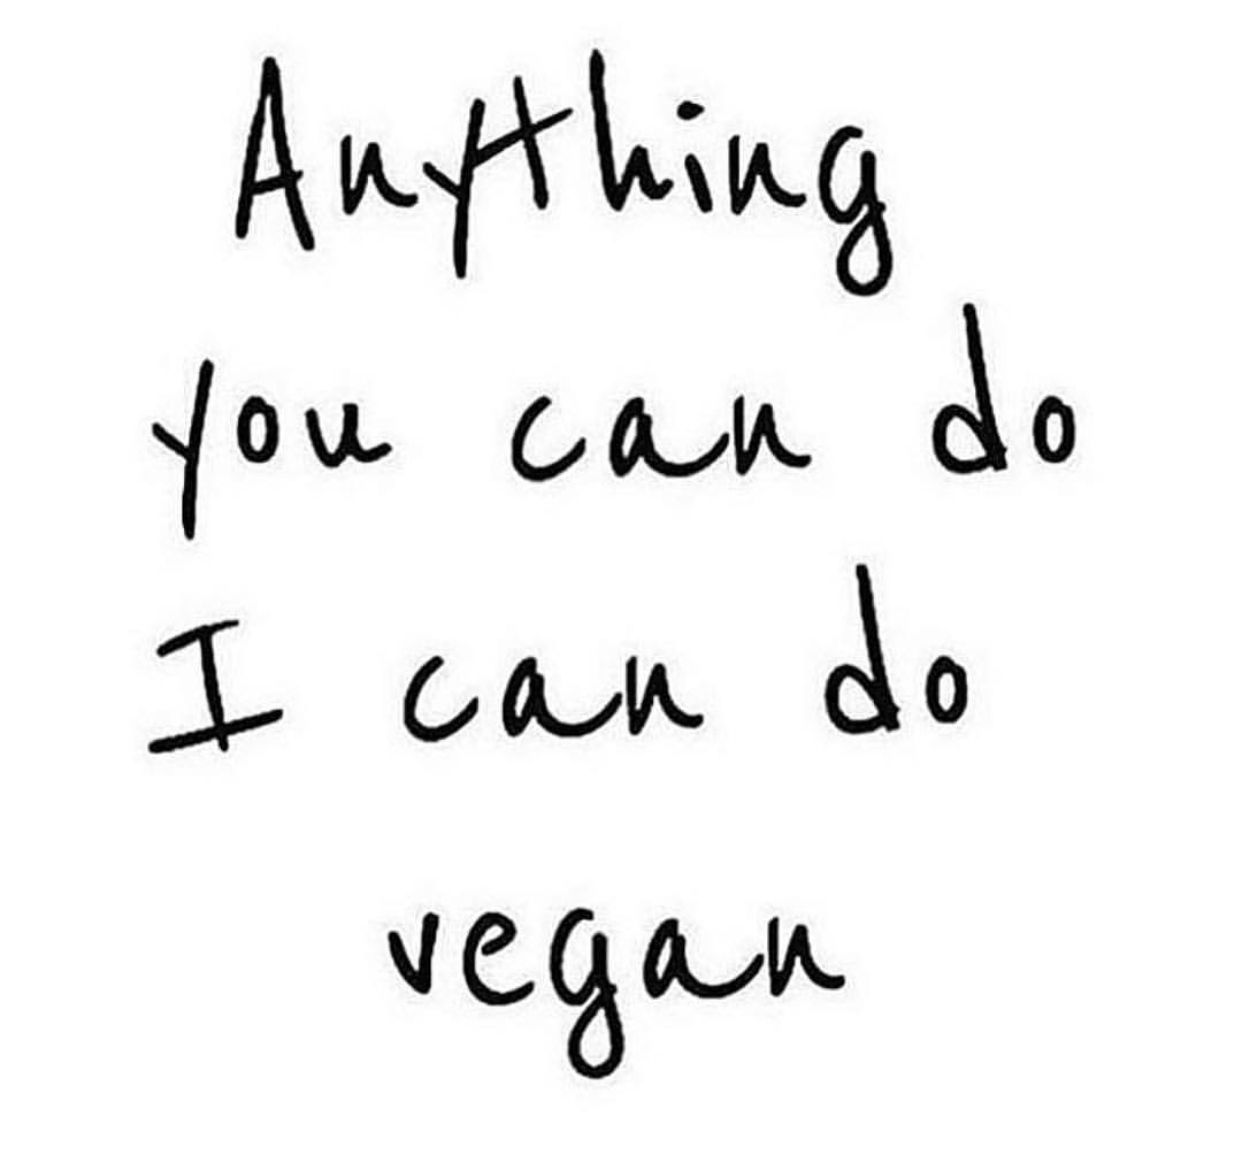 Vegan Quotes Vegan Life  Lifestyle Change  Pinterest  Vegan Life Vegans And